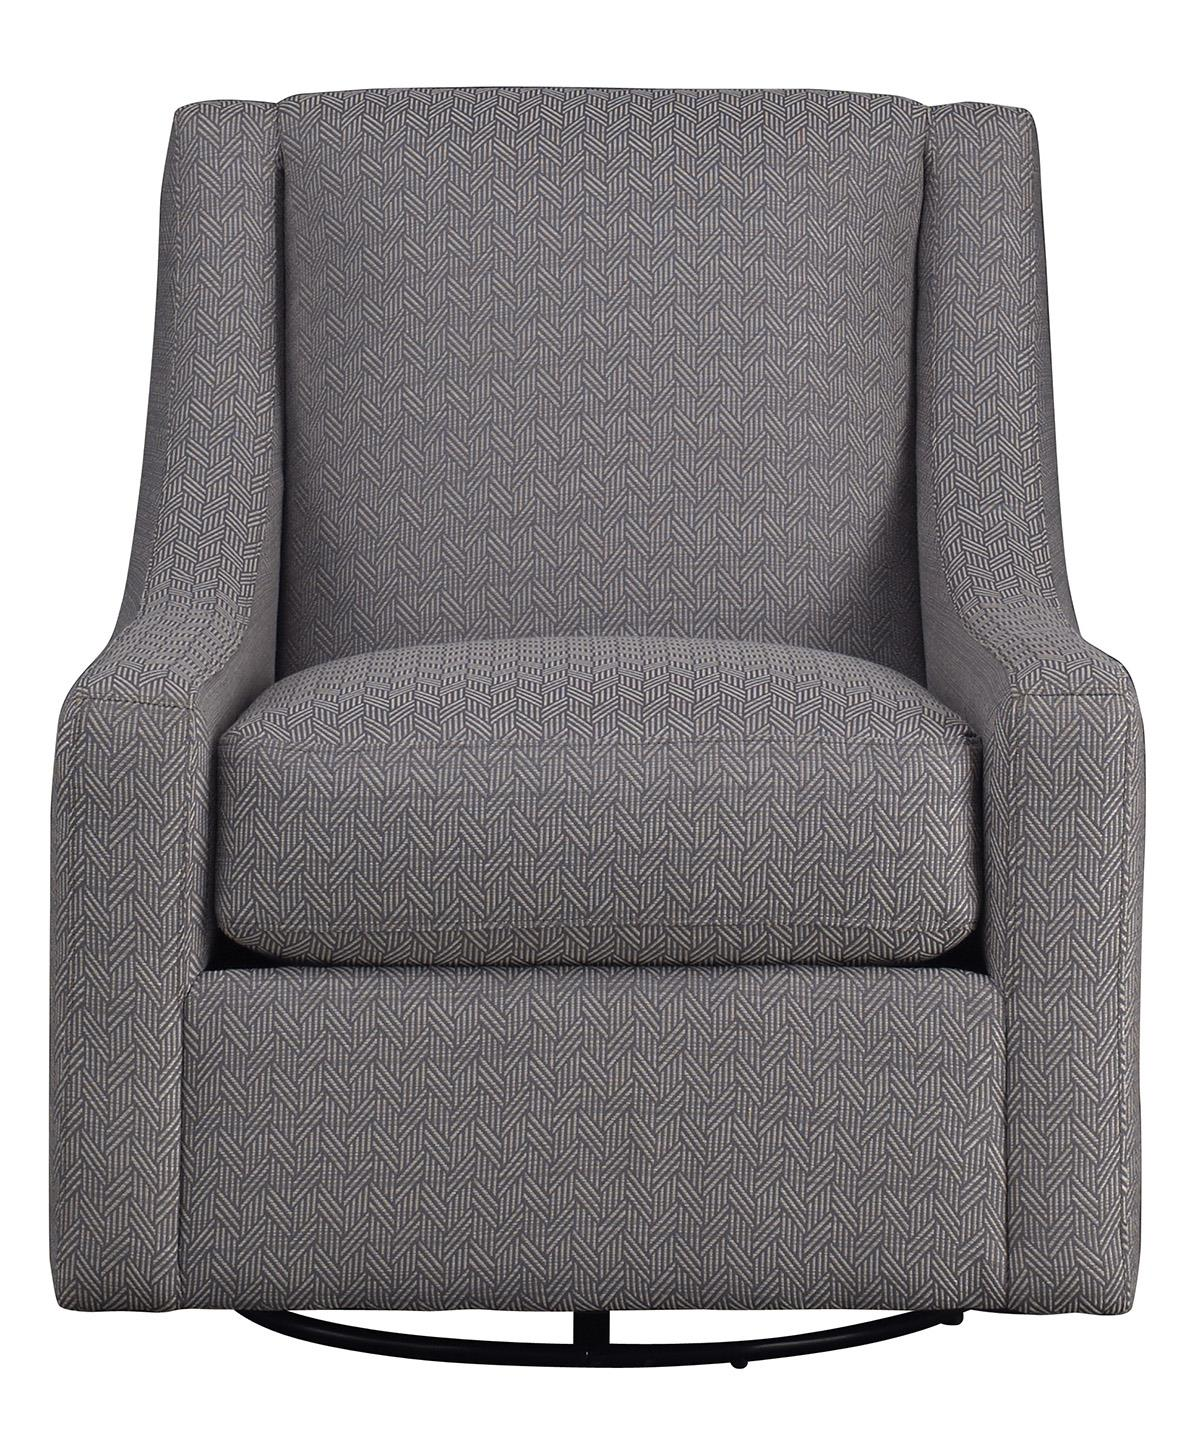 Metro Collection Accents Contemporary Swivel Chair - Item Number: 452U-44